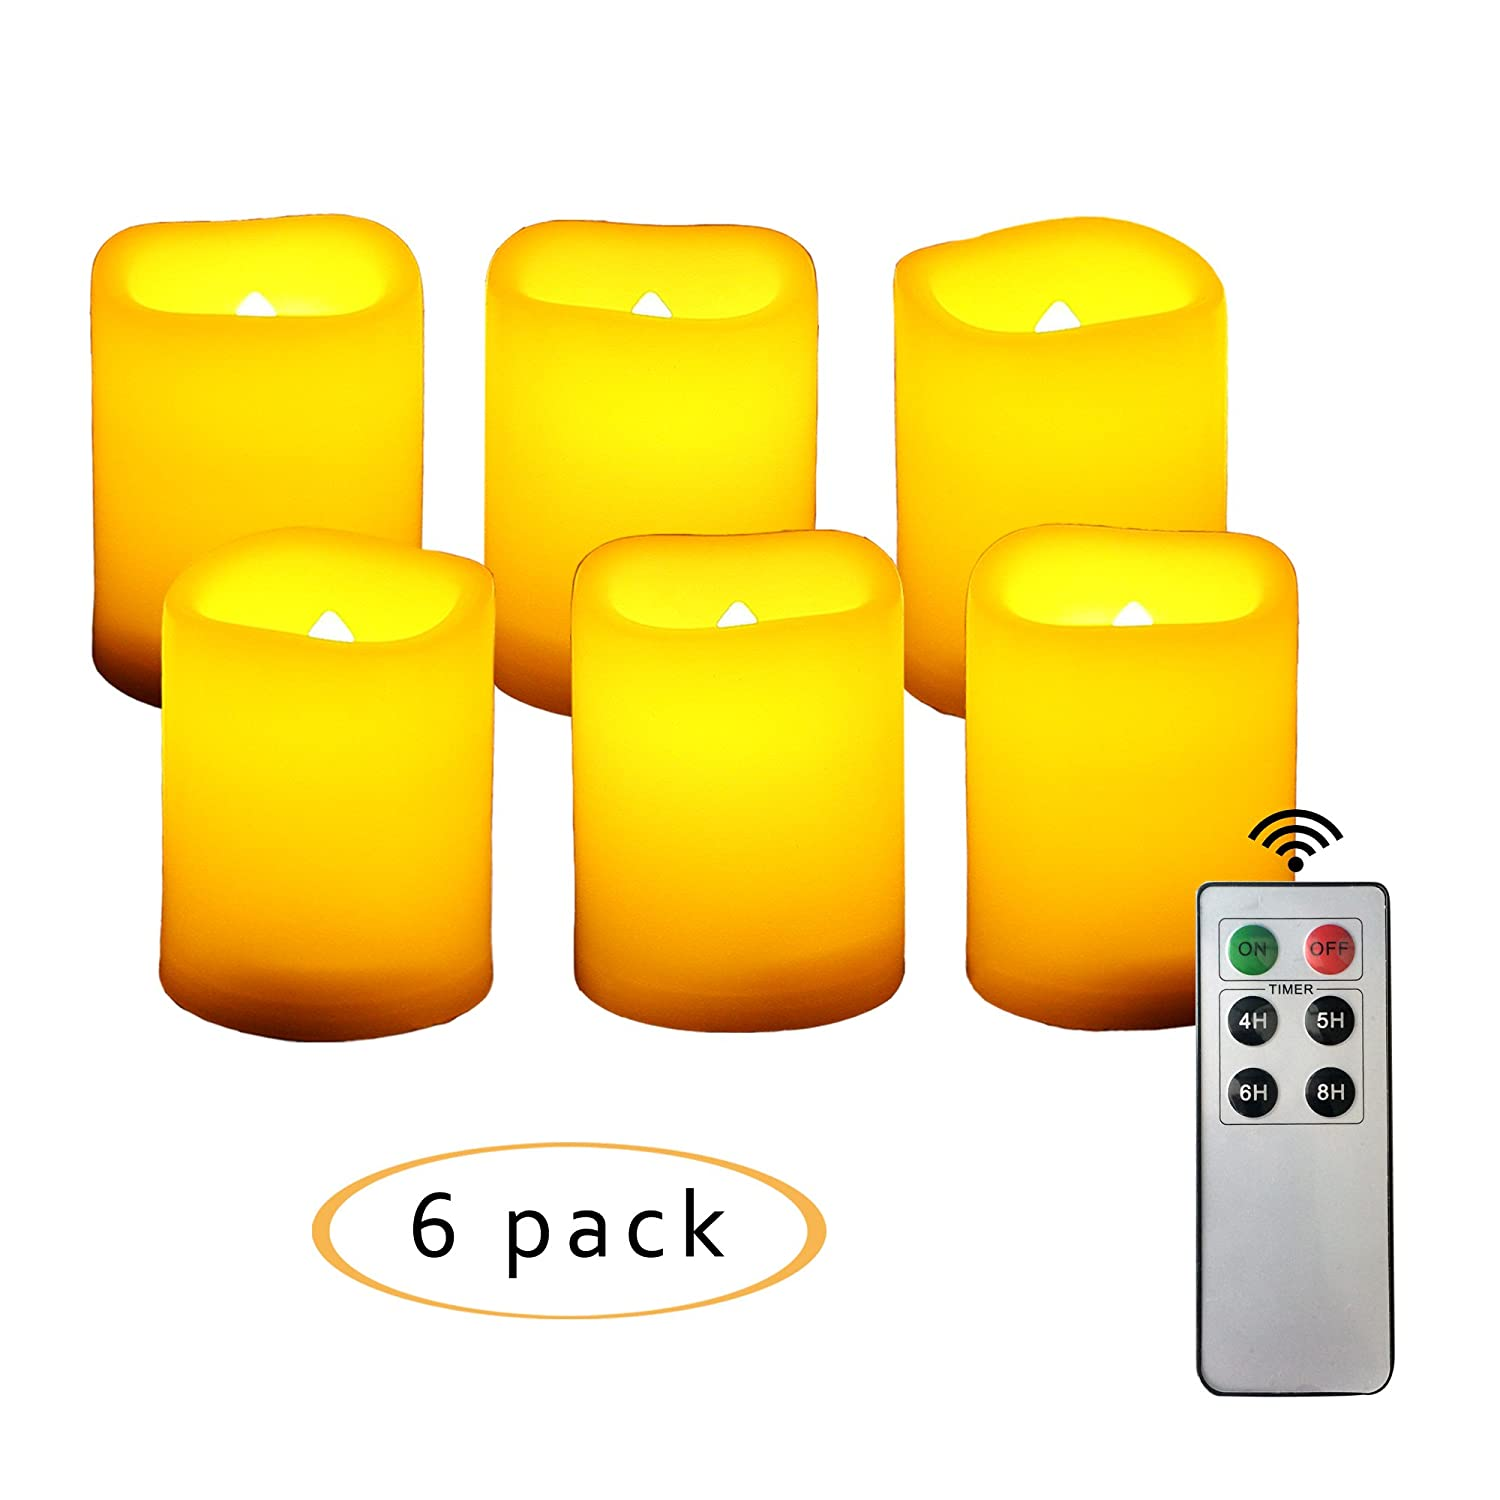 CANDLE CHOICE 6 PCS Realistic Flickering Flameless Candles, LED Votives, Battery-operated Tea Lights with Remote and Timer, Long Lasting, 1.5